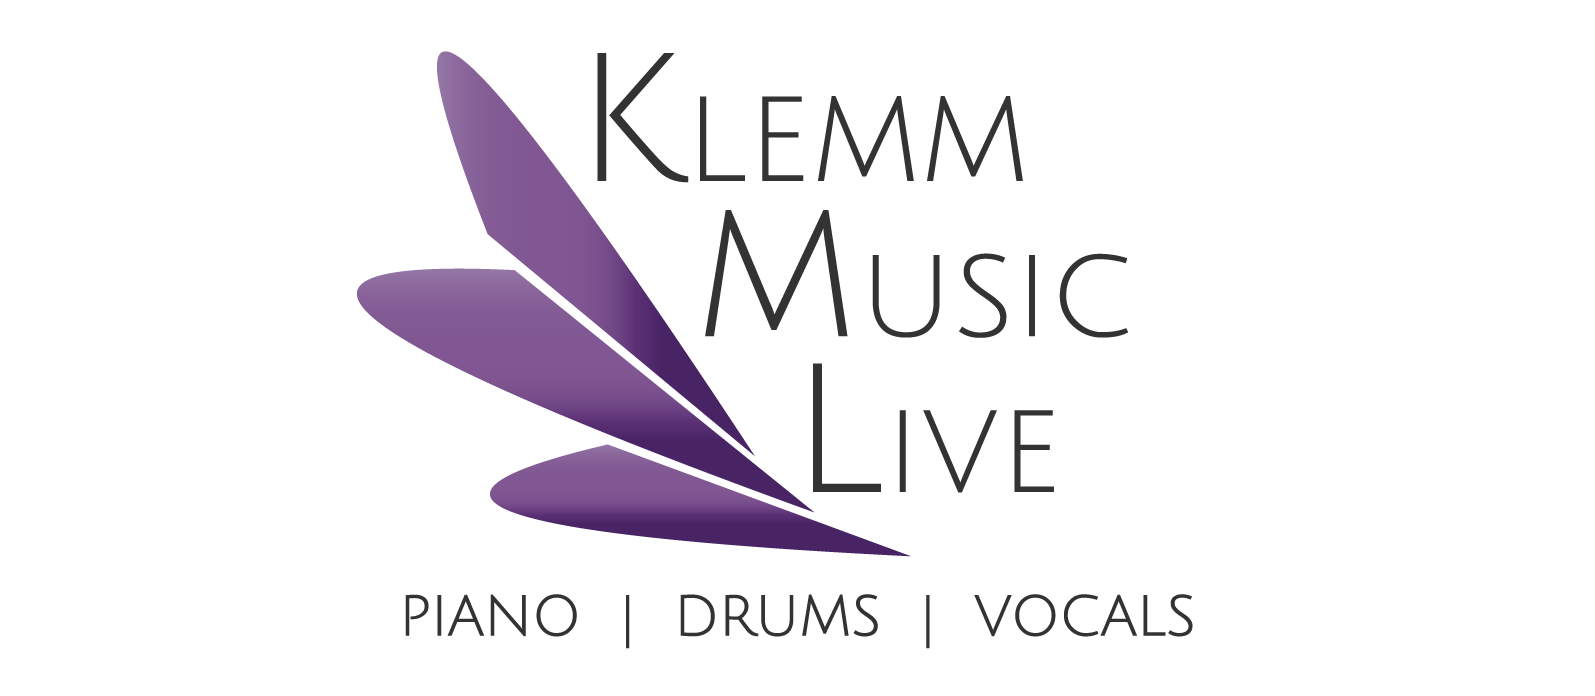 KlemmLivePerformances---Tagline.png